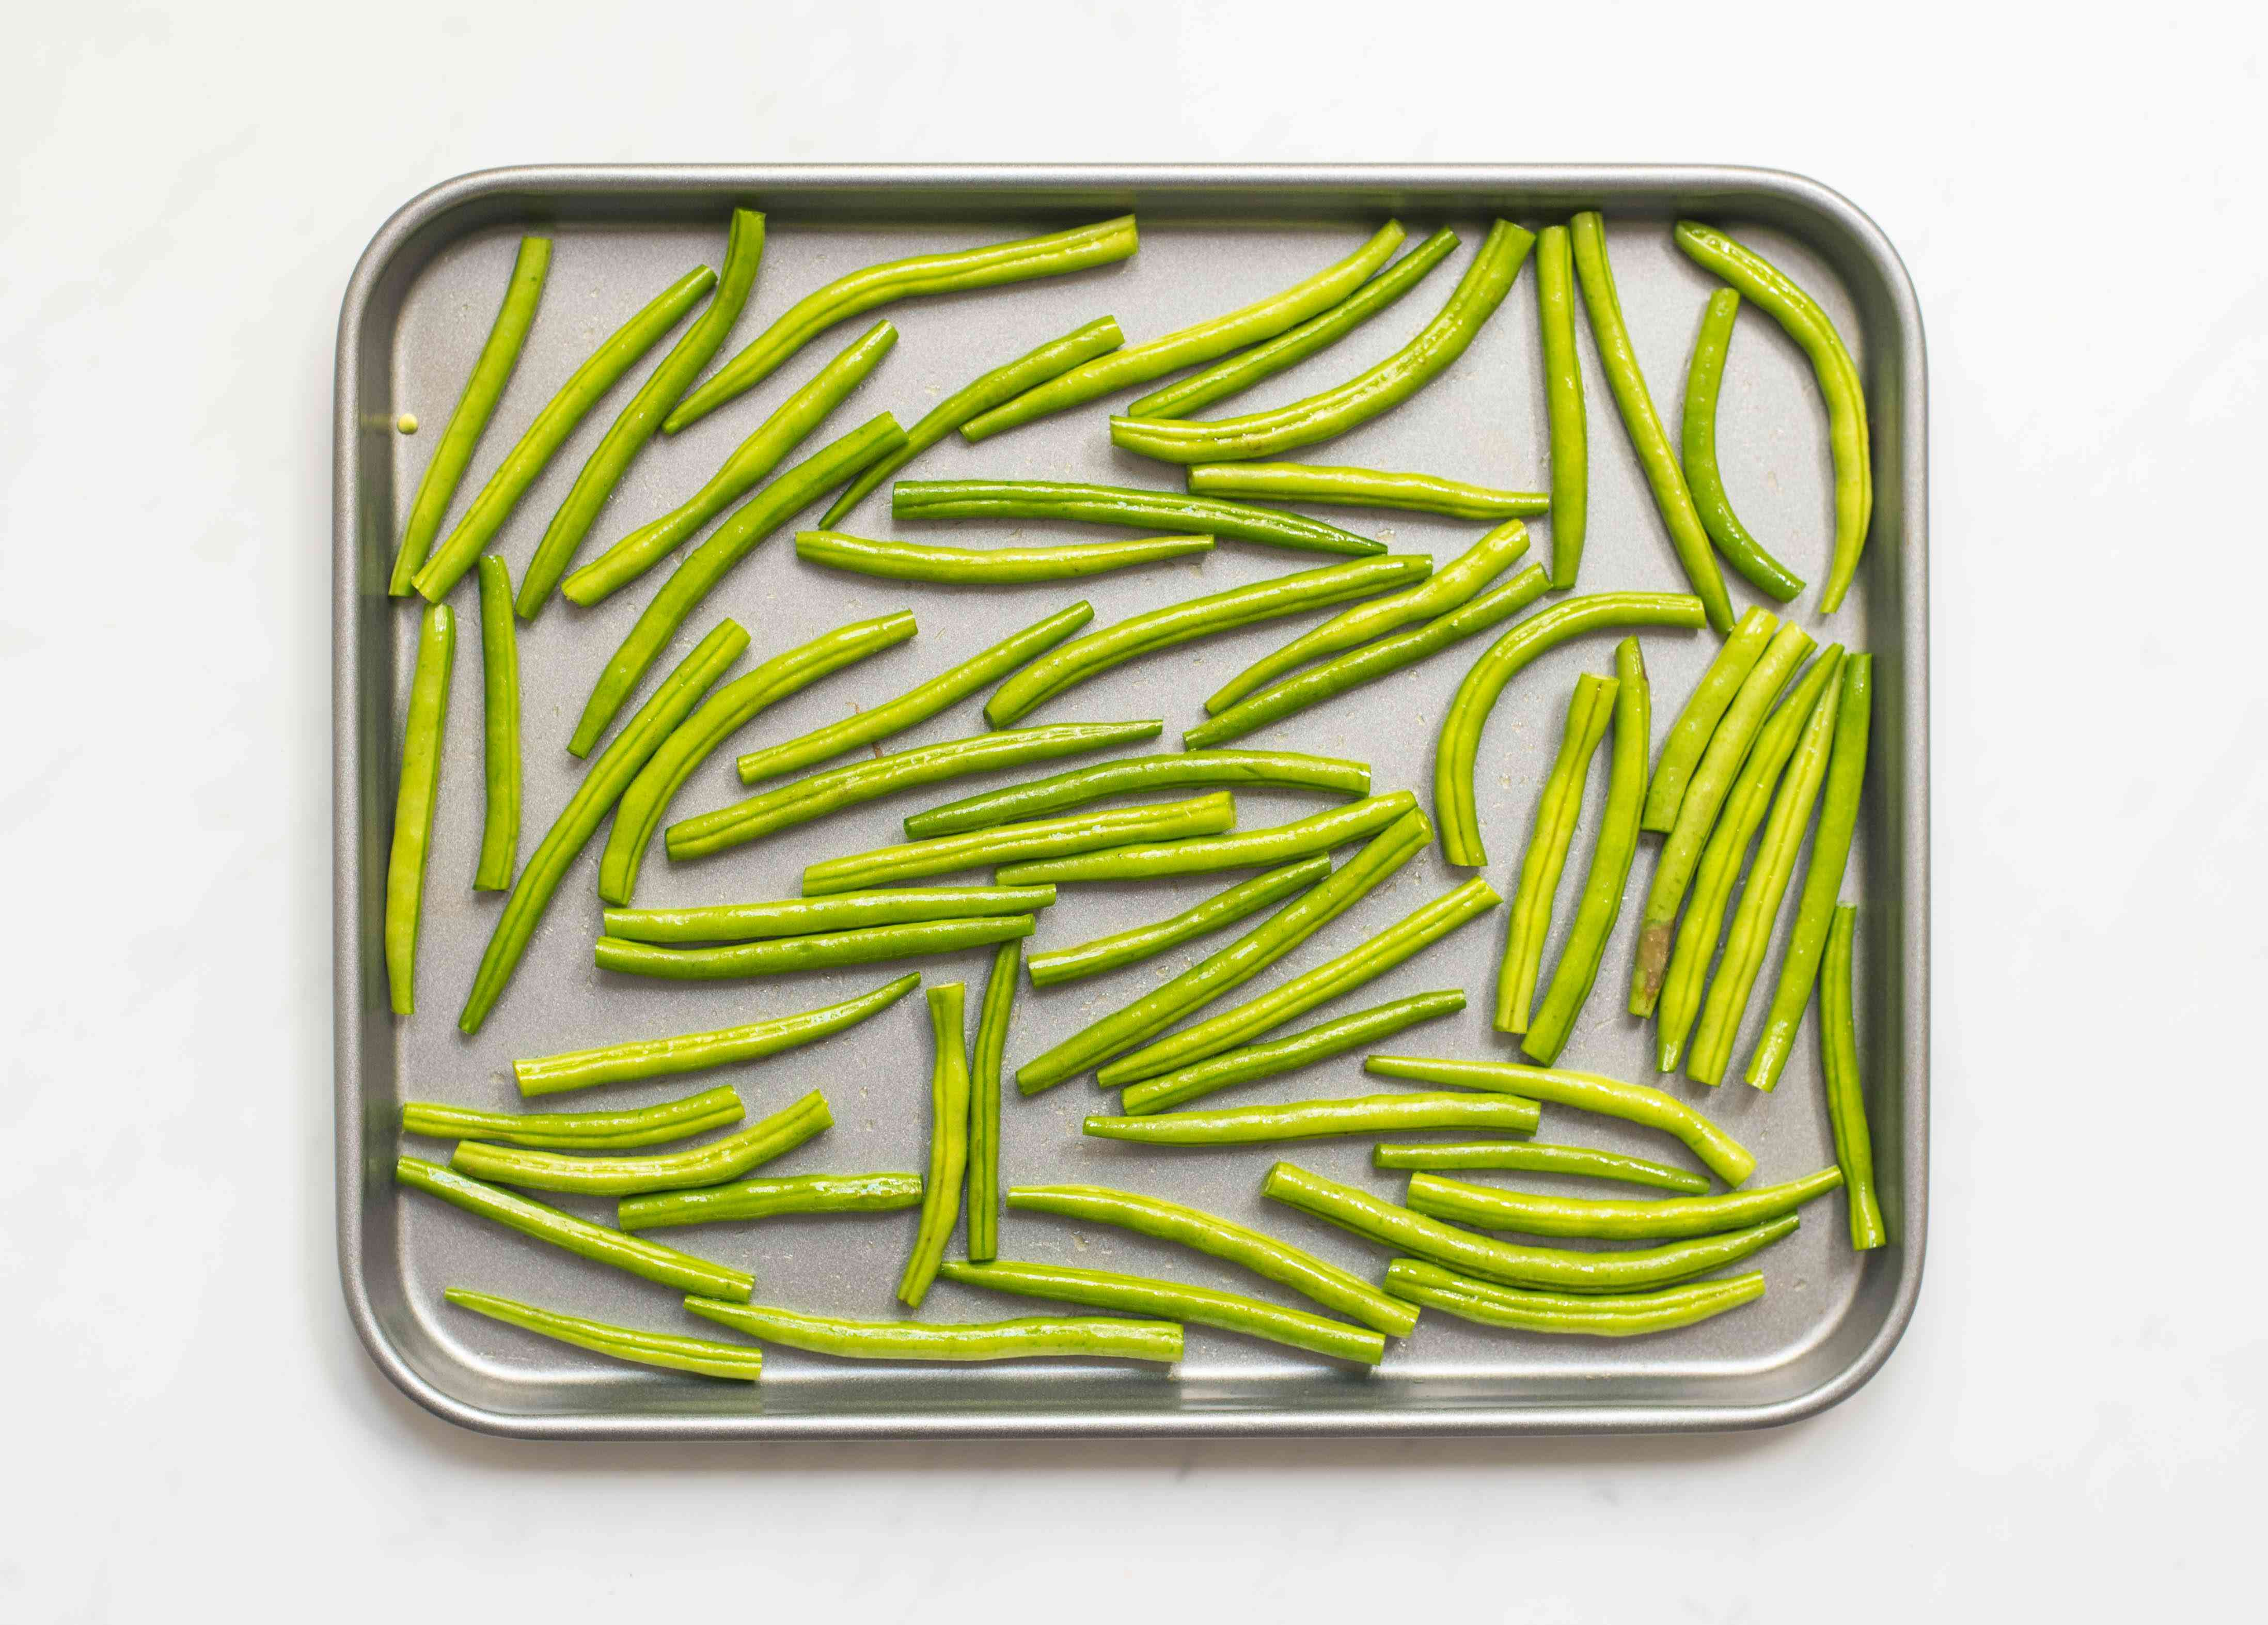 Lift green beans out of bowl